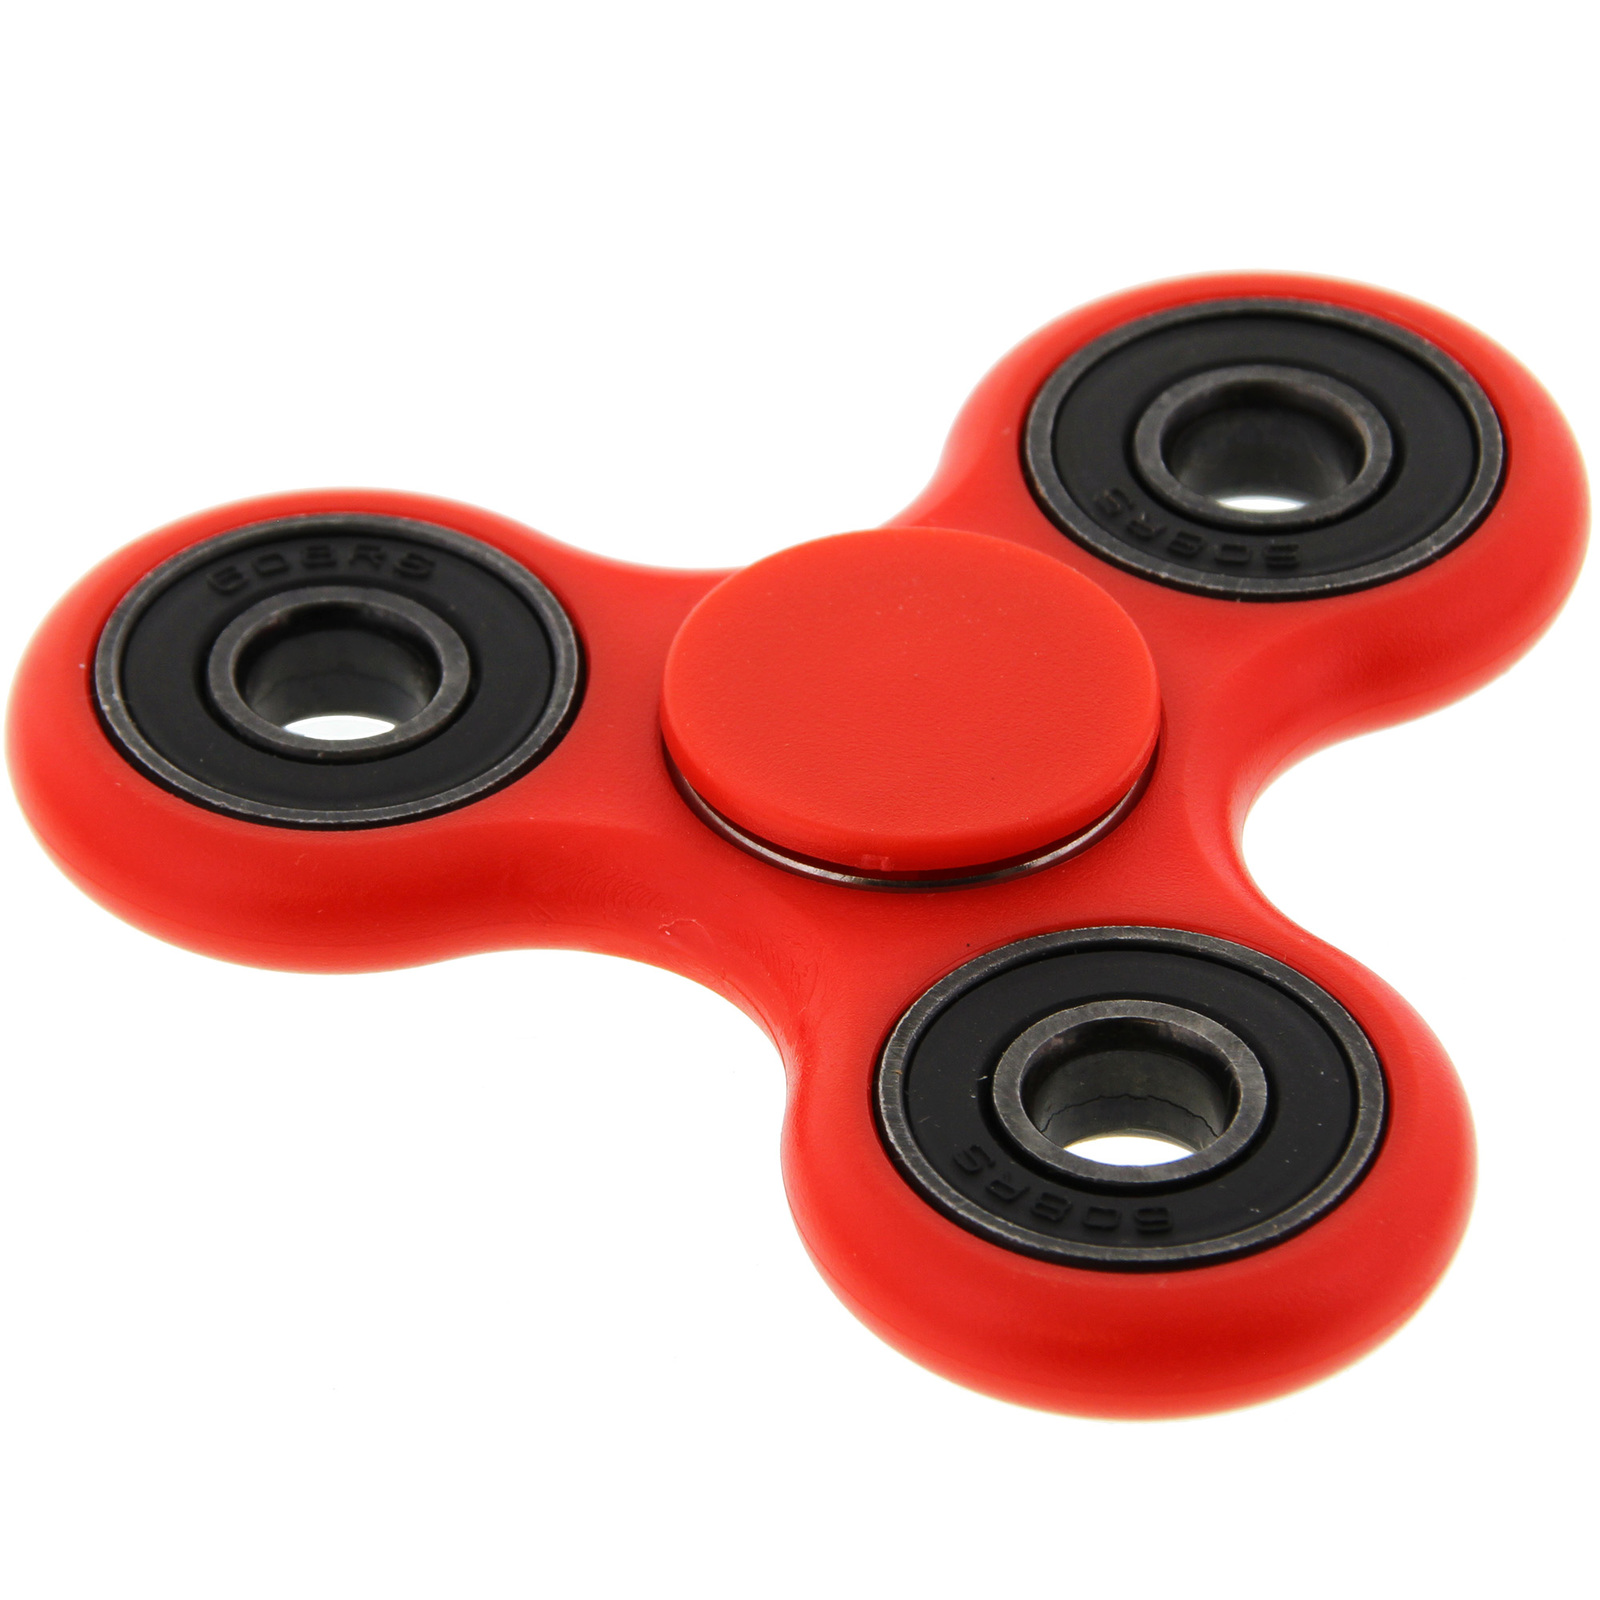 Buy Fidget Spinner (Red) at Mighty Ape NZ - photo#46